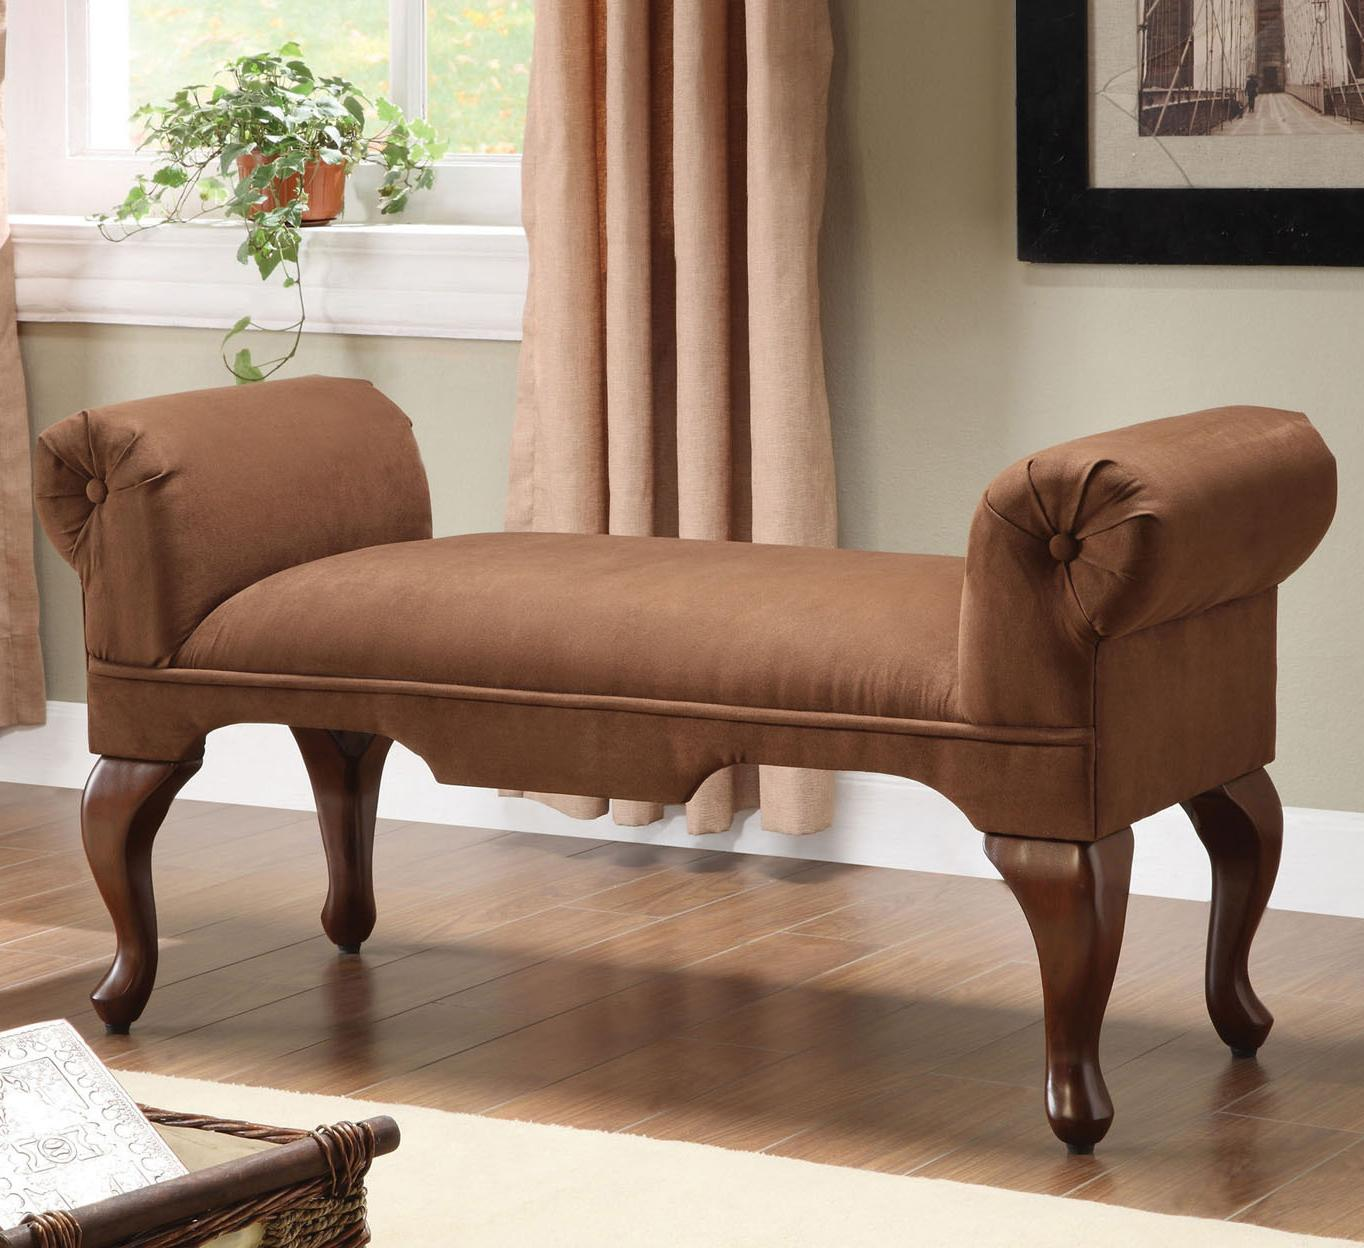 Acme Furniture Aston 05626 Traditional Rolled Arm Bench With Cabriole Legs Furniture